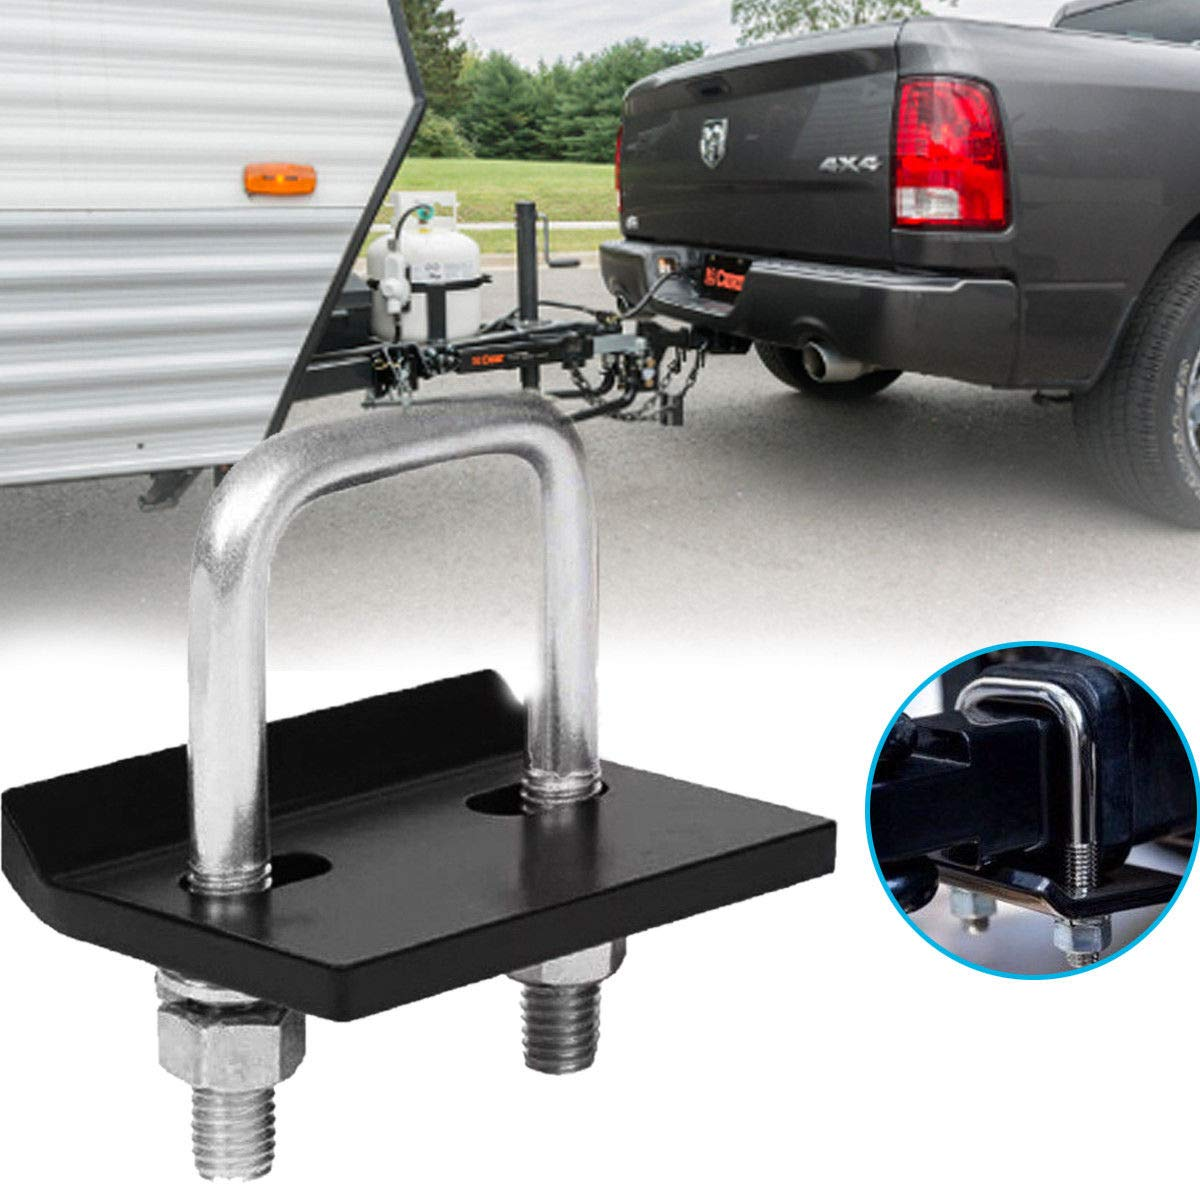 Anti Rust Adjustable Anti-Rattle Hitch Stabilizer Easy Installation for Trailer Carrier Rack La Vane Hitch Tightener for 1.25 inch /& 2 inch Hitches Heavy-Duty